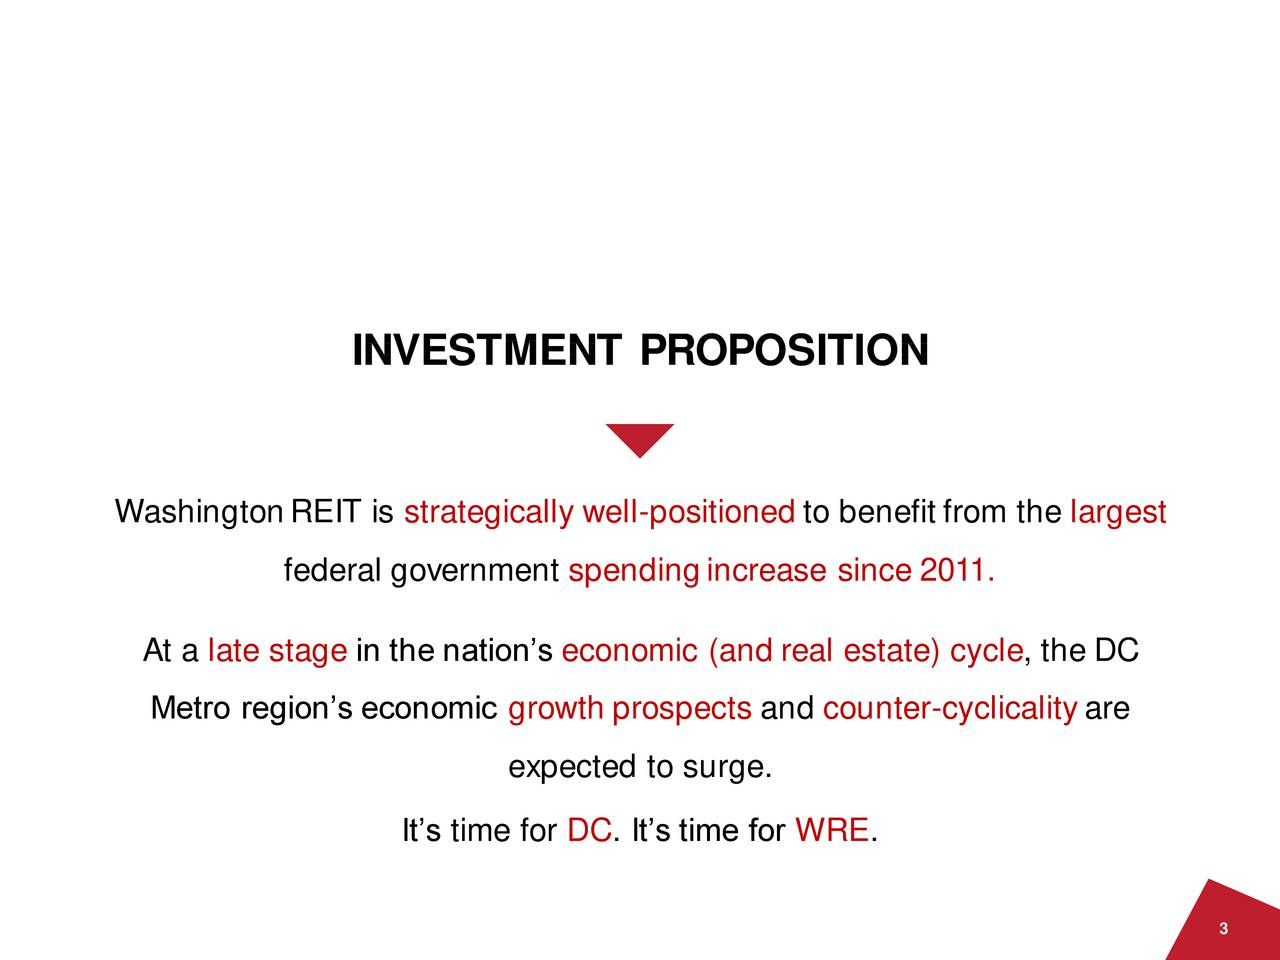 WashingtonREIT is strategically well-positioned to benefit from the largest federal government spendingincrease since 2011. At a late stage in the nation's economic (and real estate) cycle, the DC Metro region's economic growth prospects and counter-cyclicality are expected to surge. It's time for DC. It's time for WRE. 3